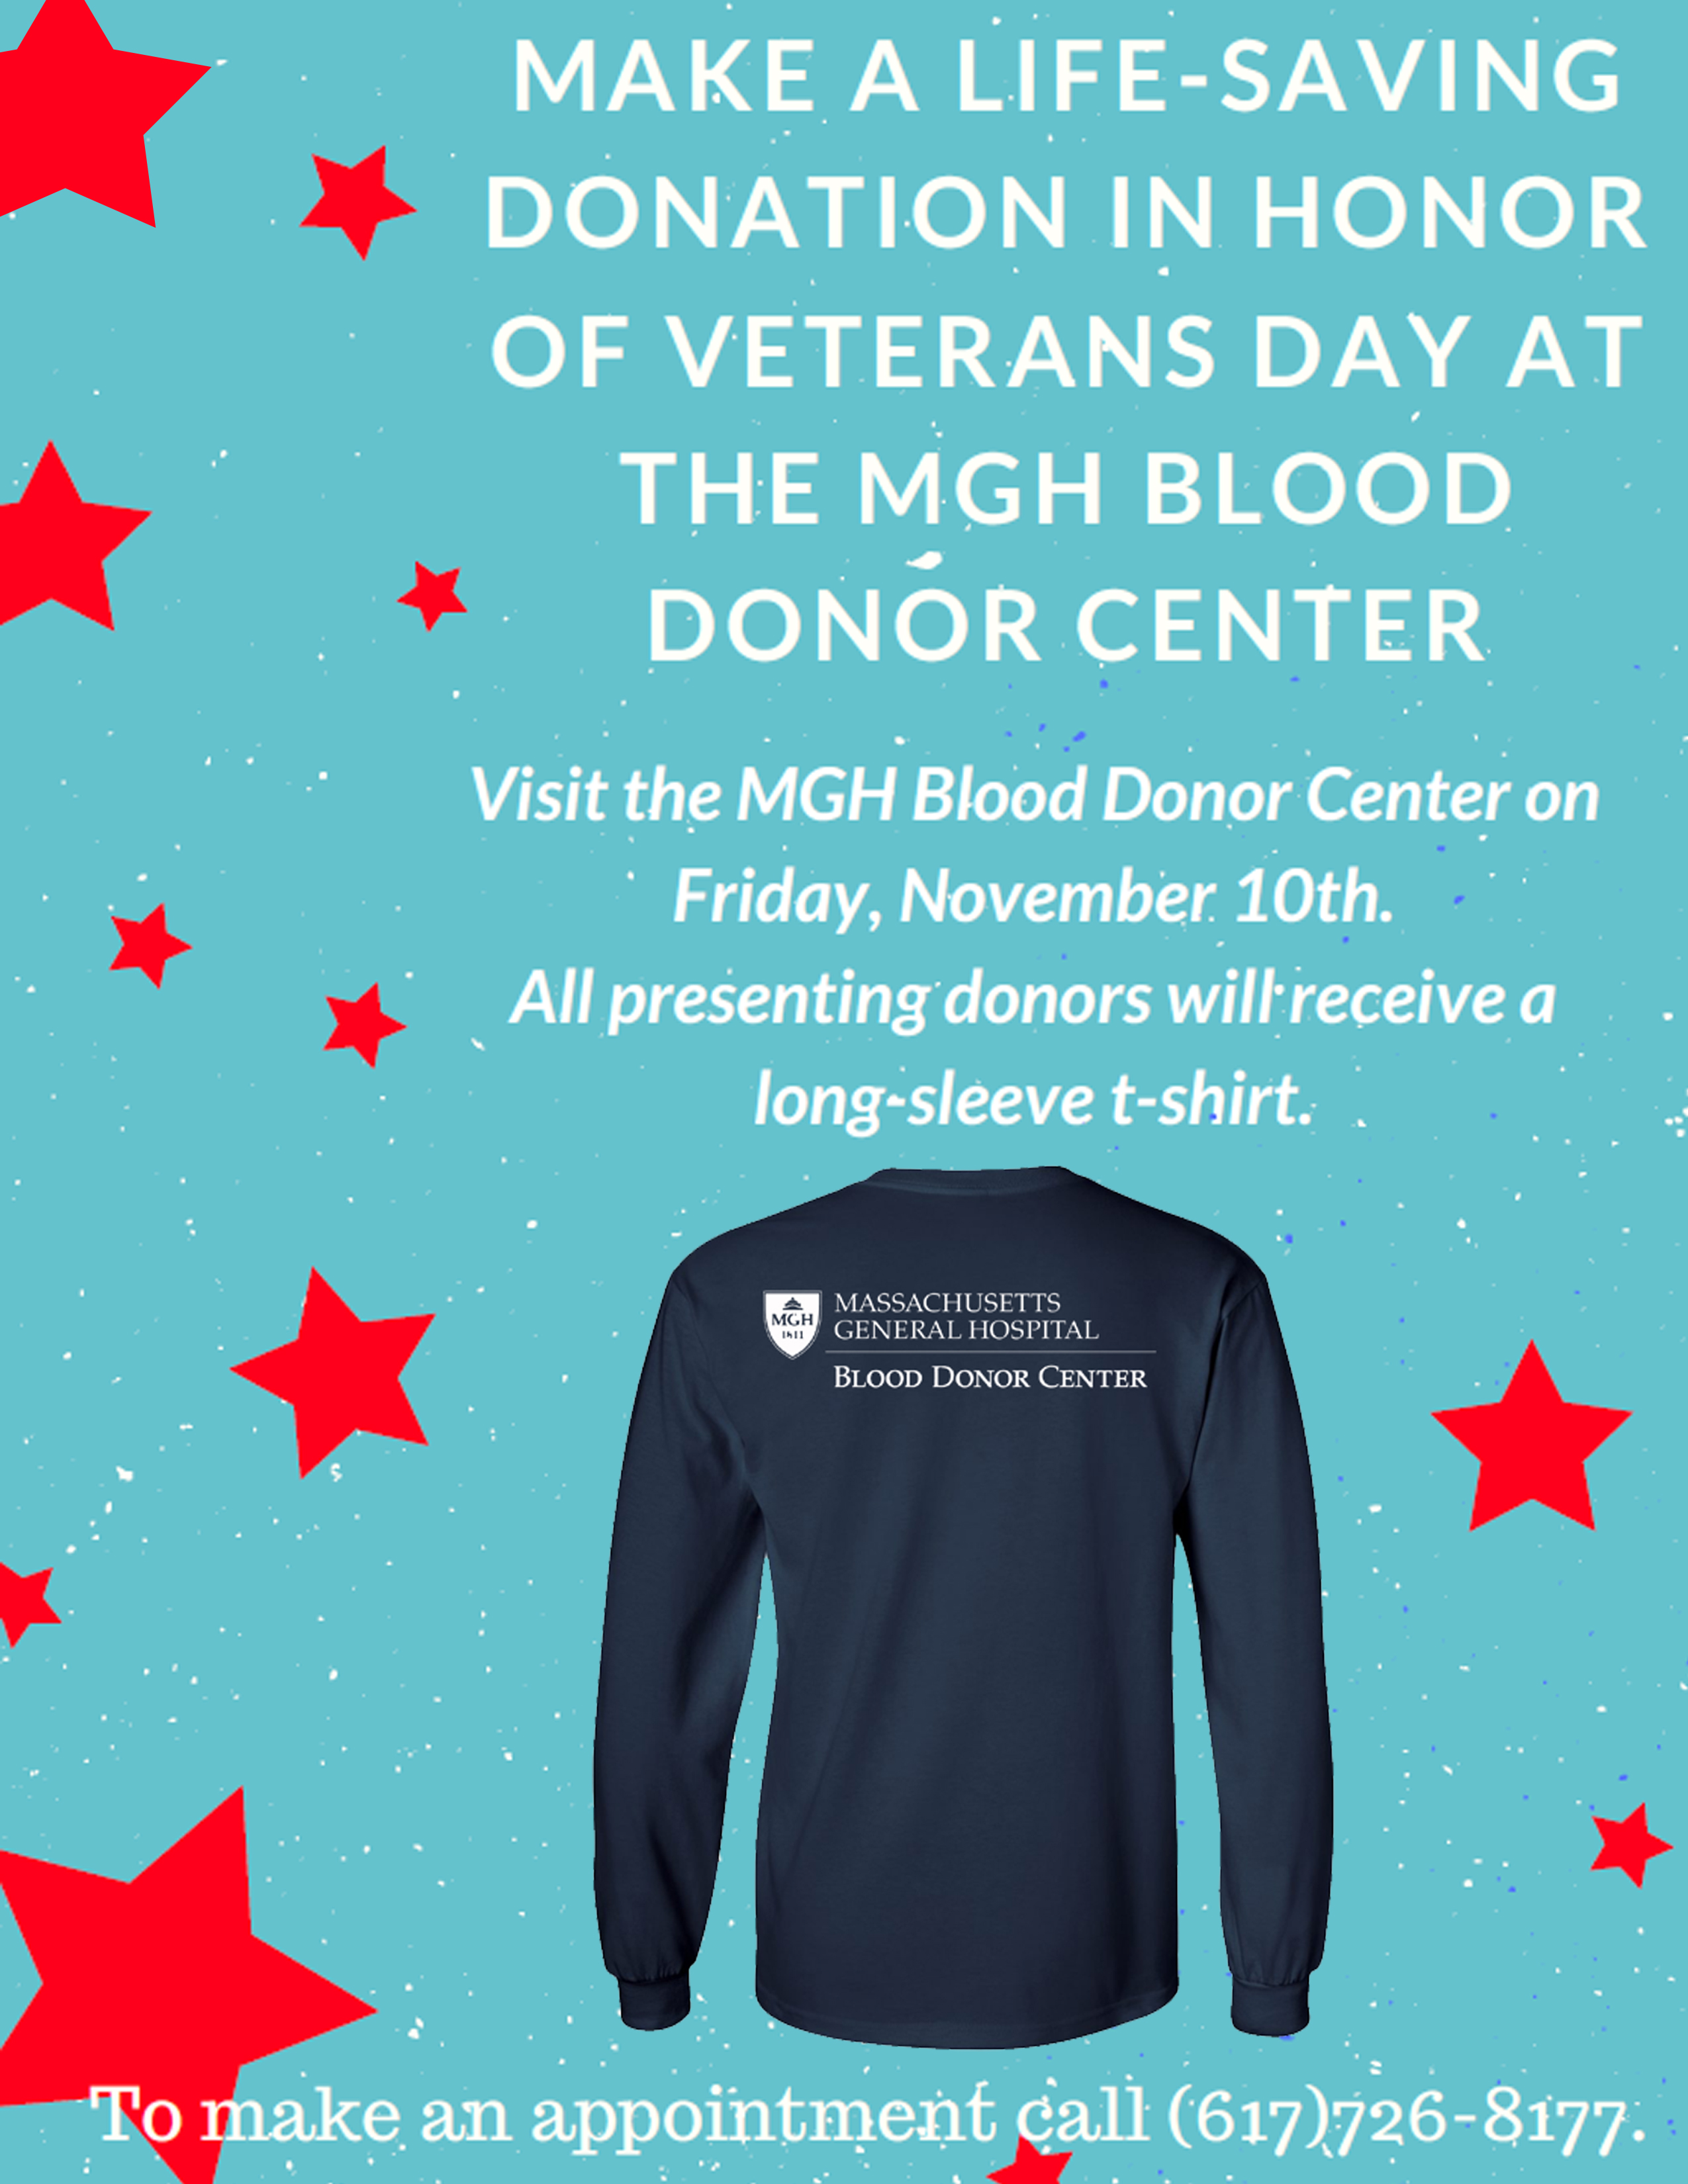 Make a Life-Saving Blood Donation in Honor of Veterans Day